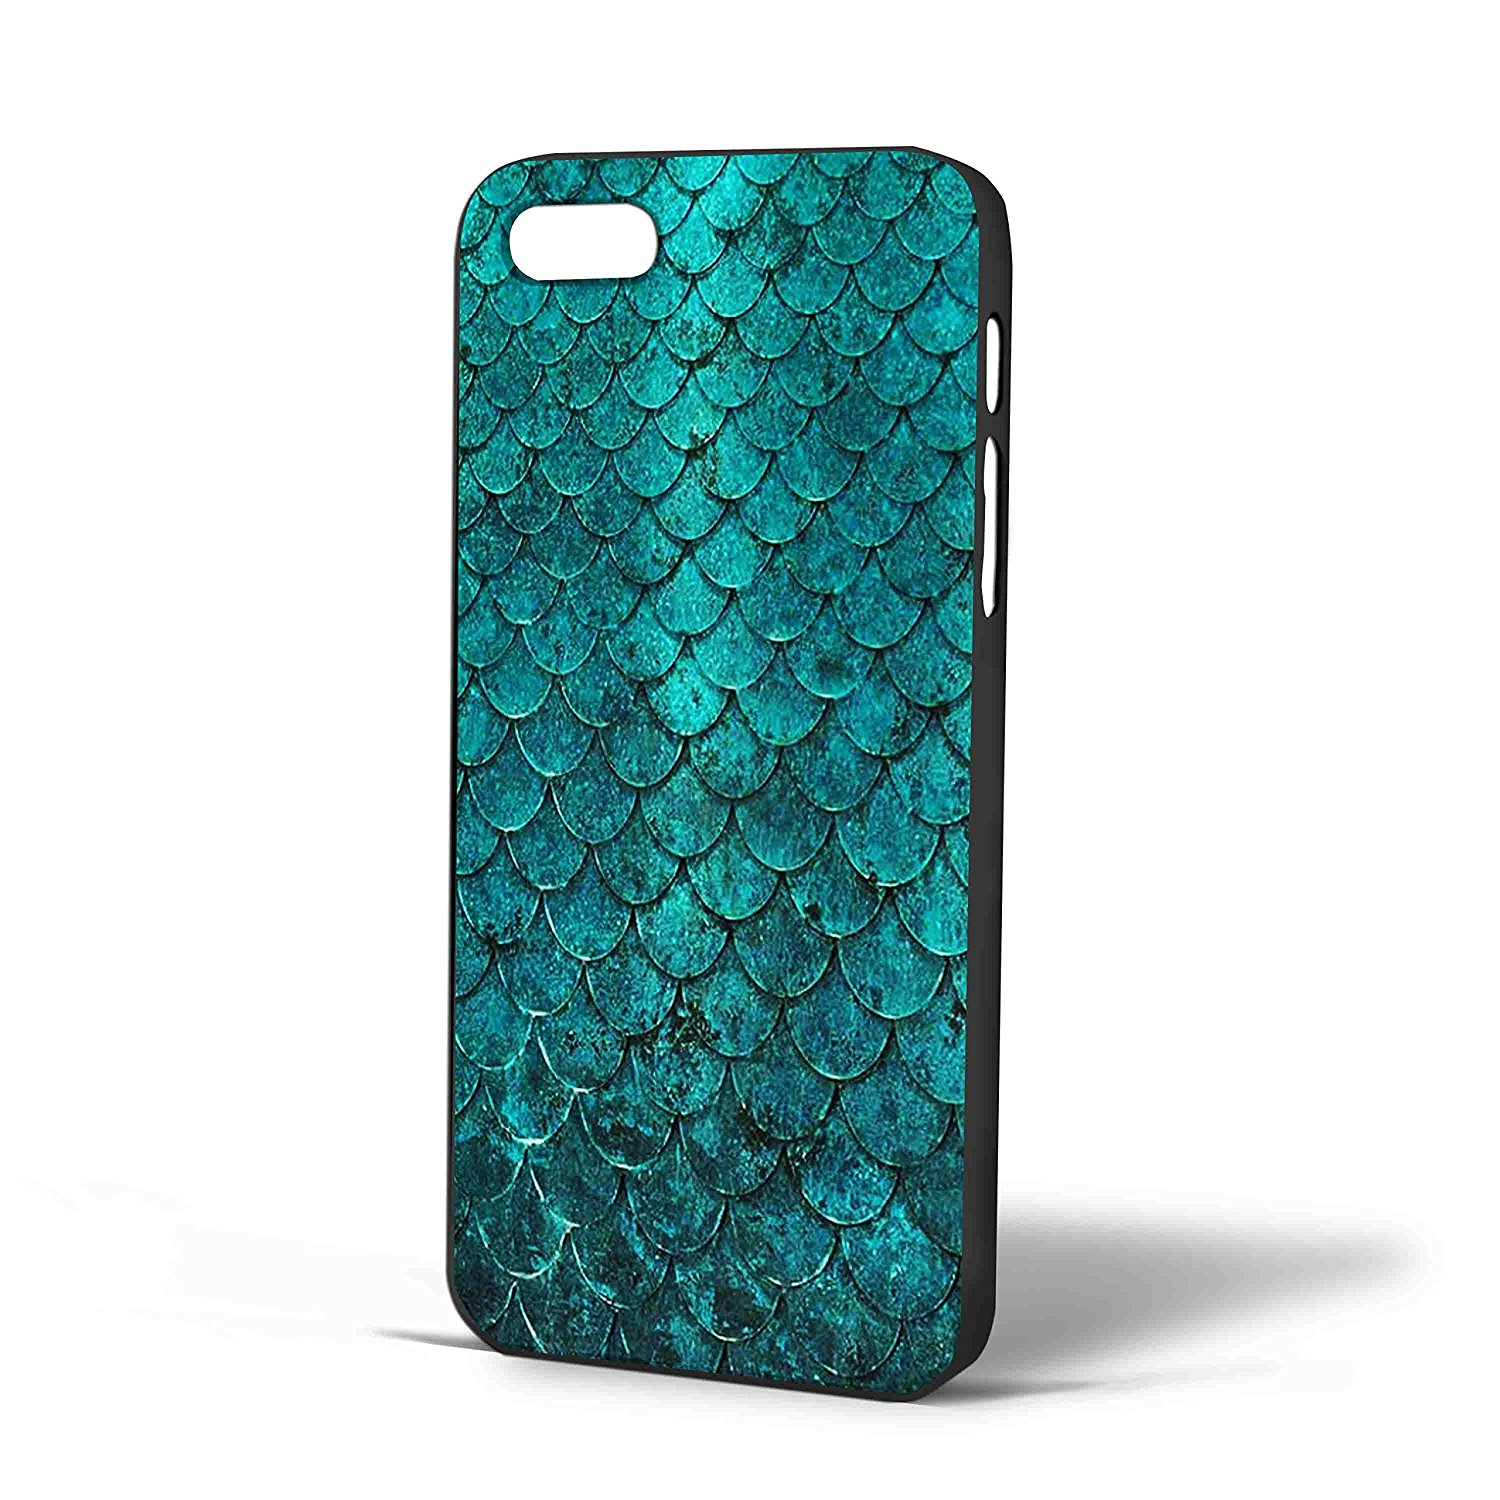 Ganma mermaid tail texture Case For iPhone Case (Case For iPhone 5c White)